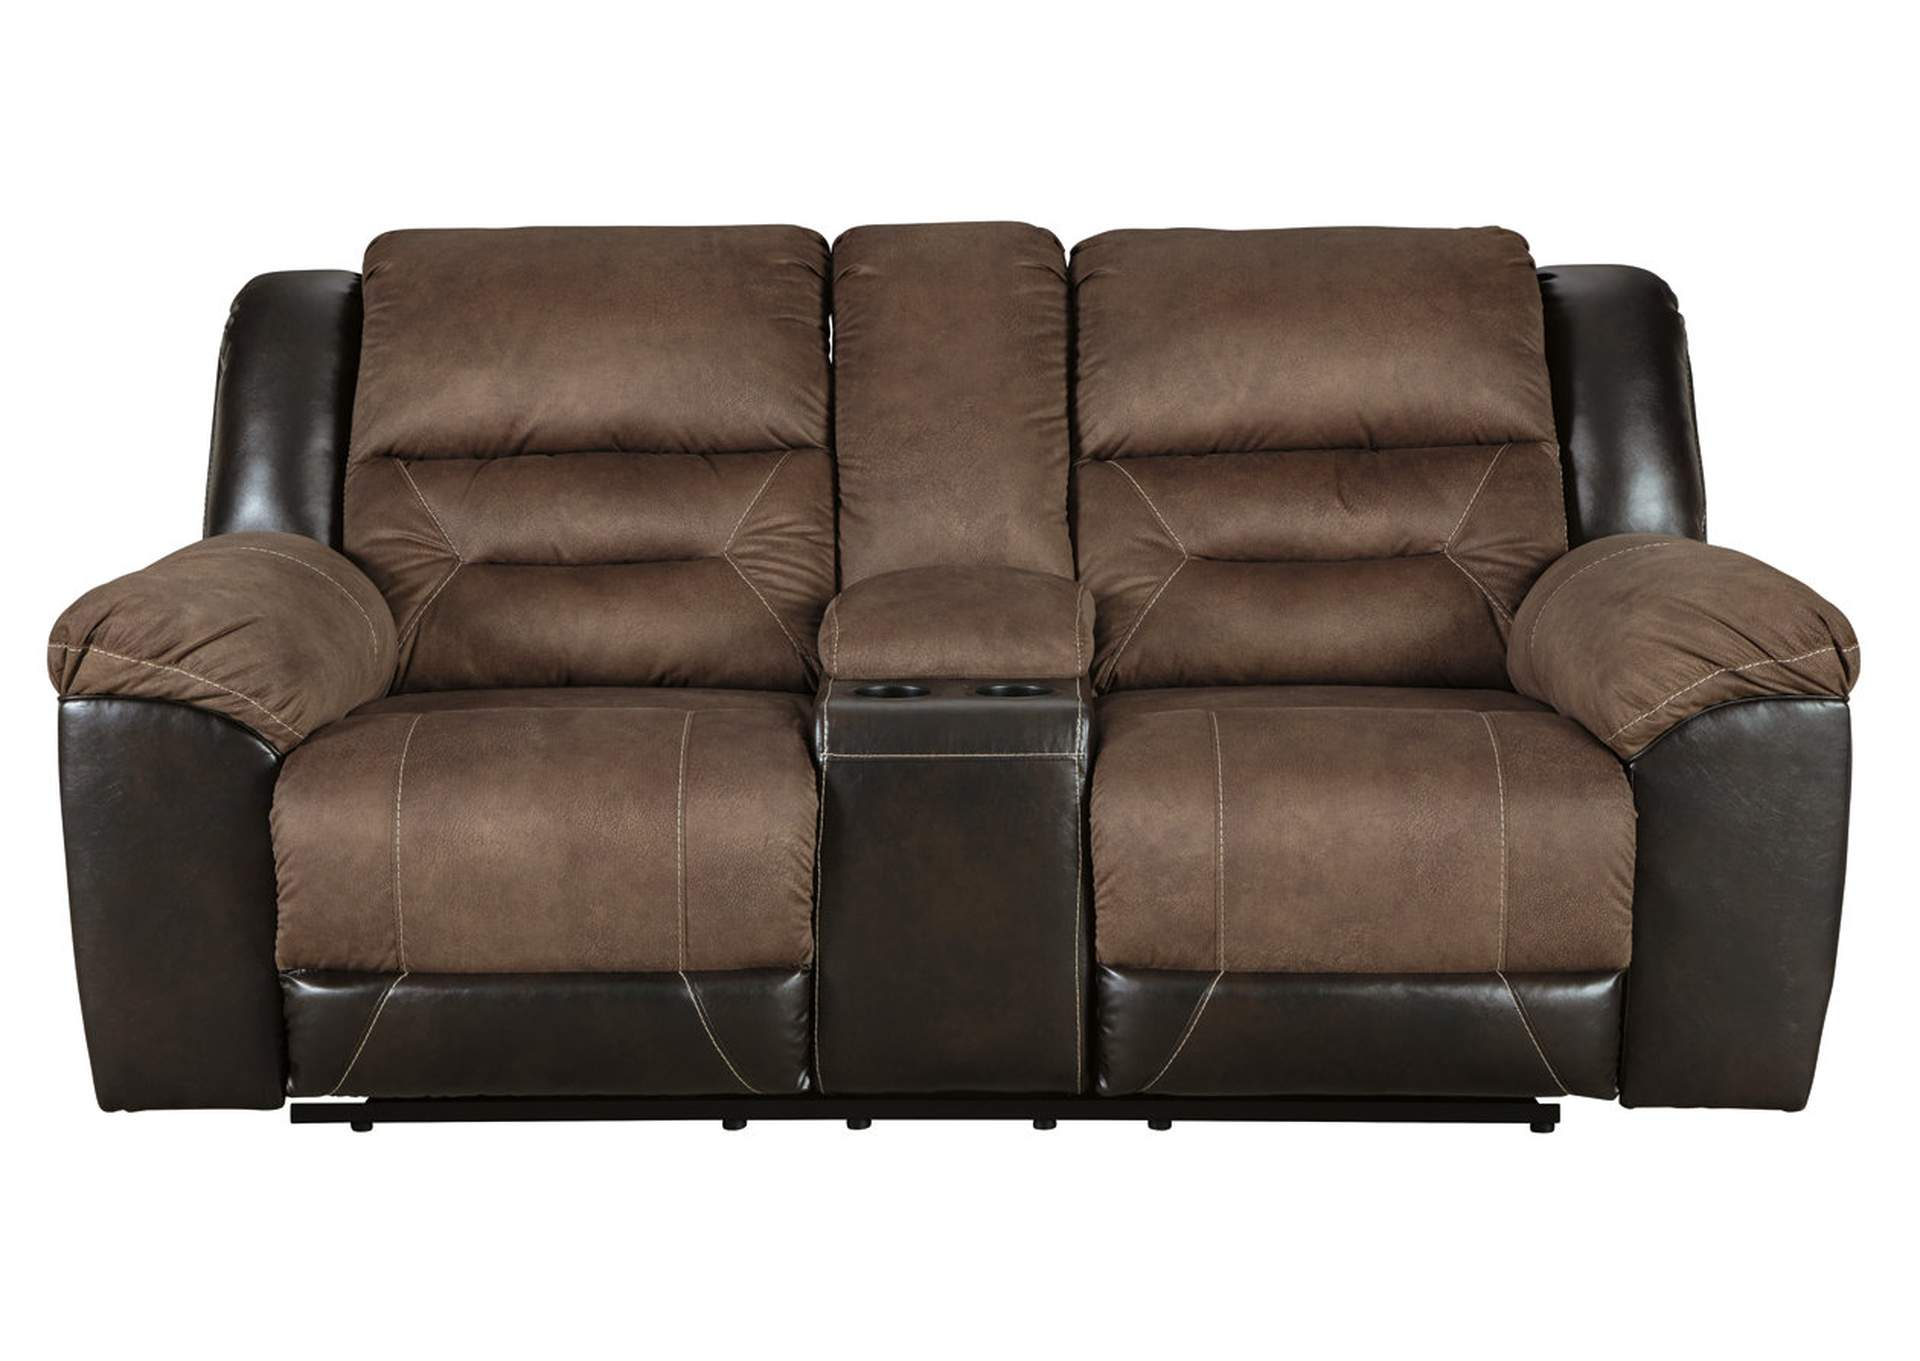 Earhart Chestnut Double Reclining Loveseat w/Console,Signature Design By Ashley